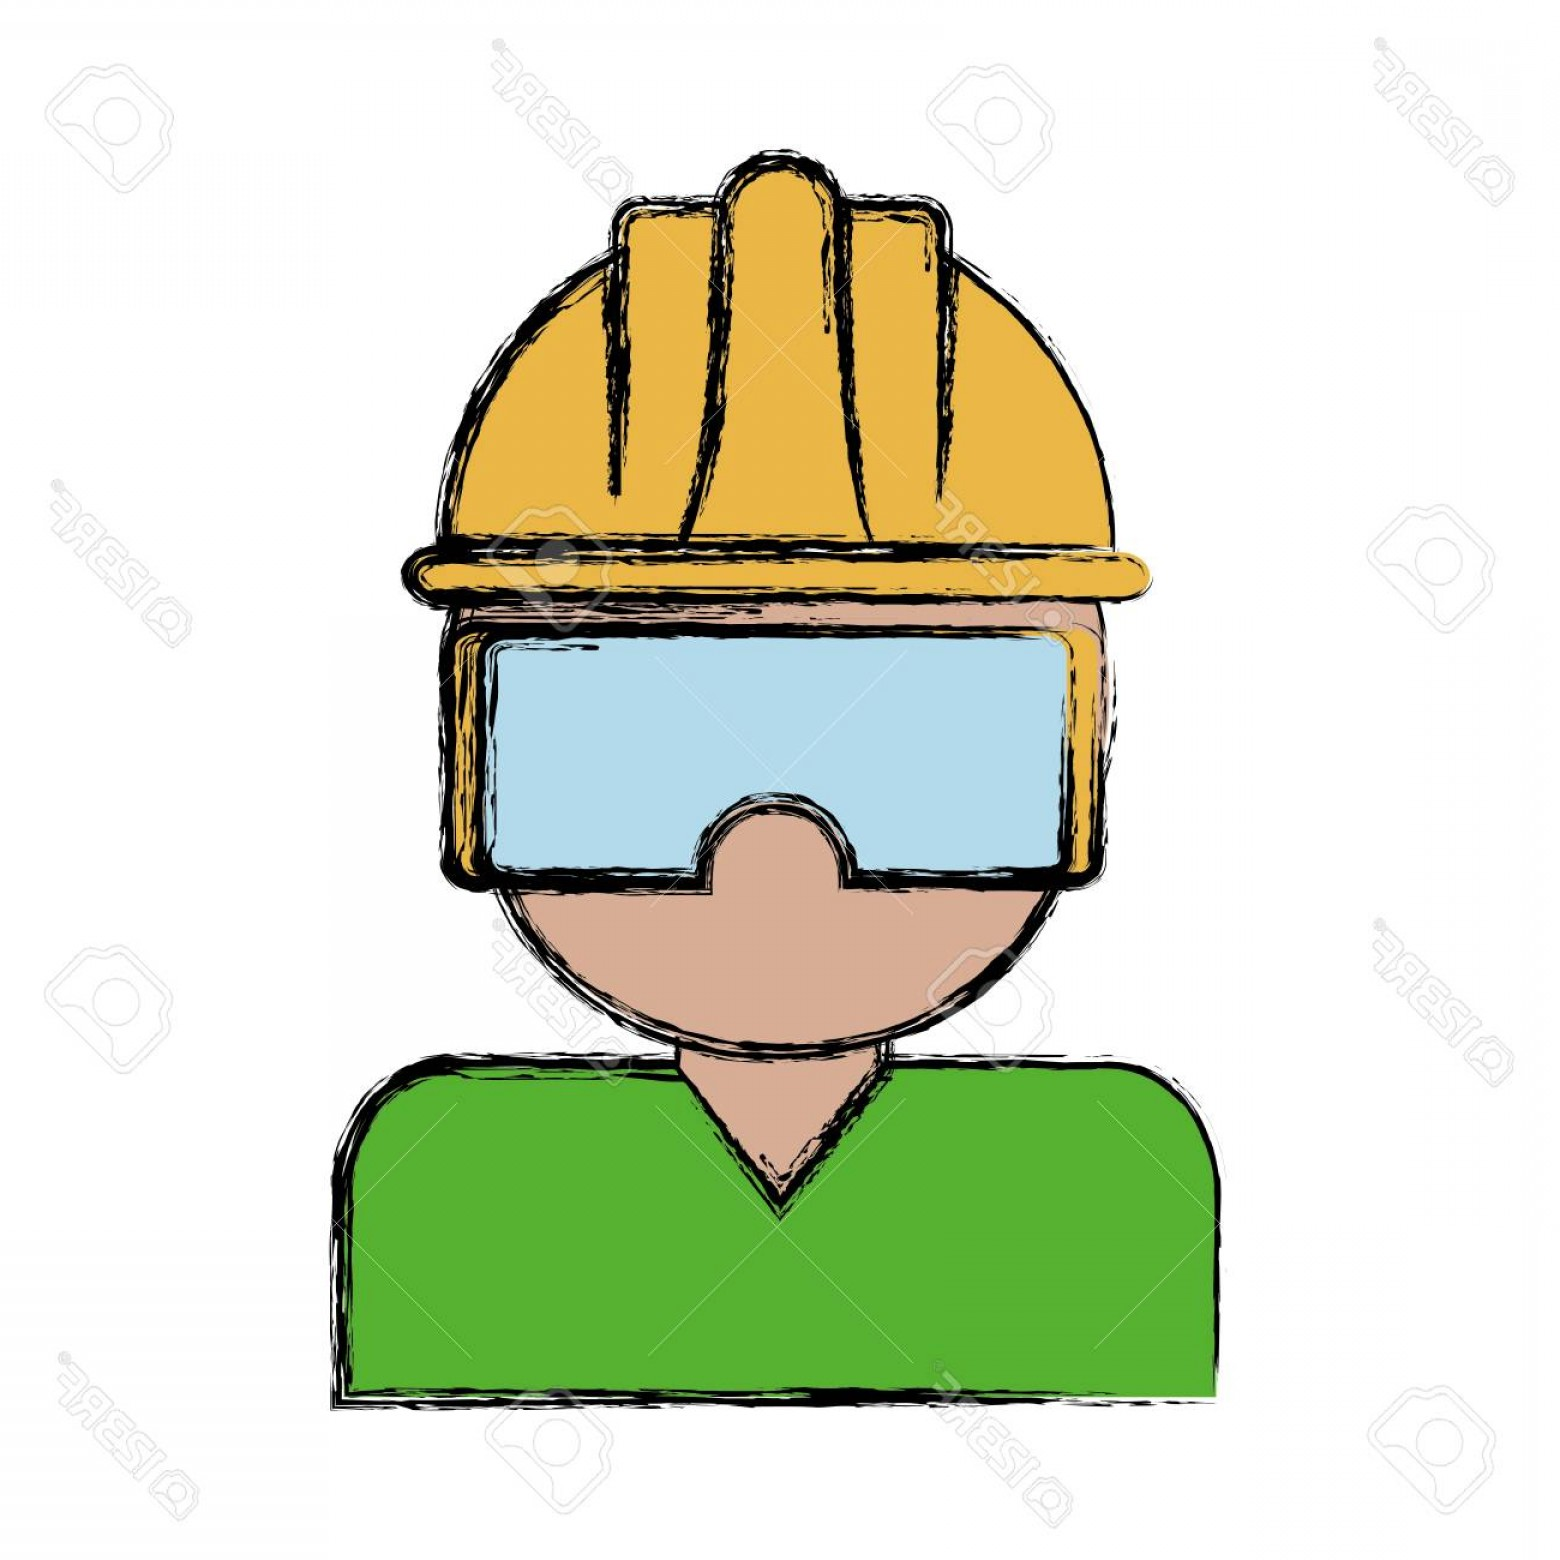 Construction Safety Goggles Vector: Photostock Vector Man With Safety Goggles And Helmet Icon Over White Background Colorful Design Vector Illustration